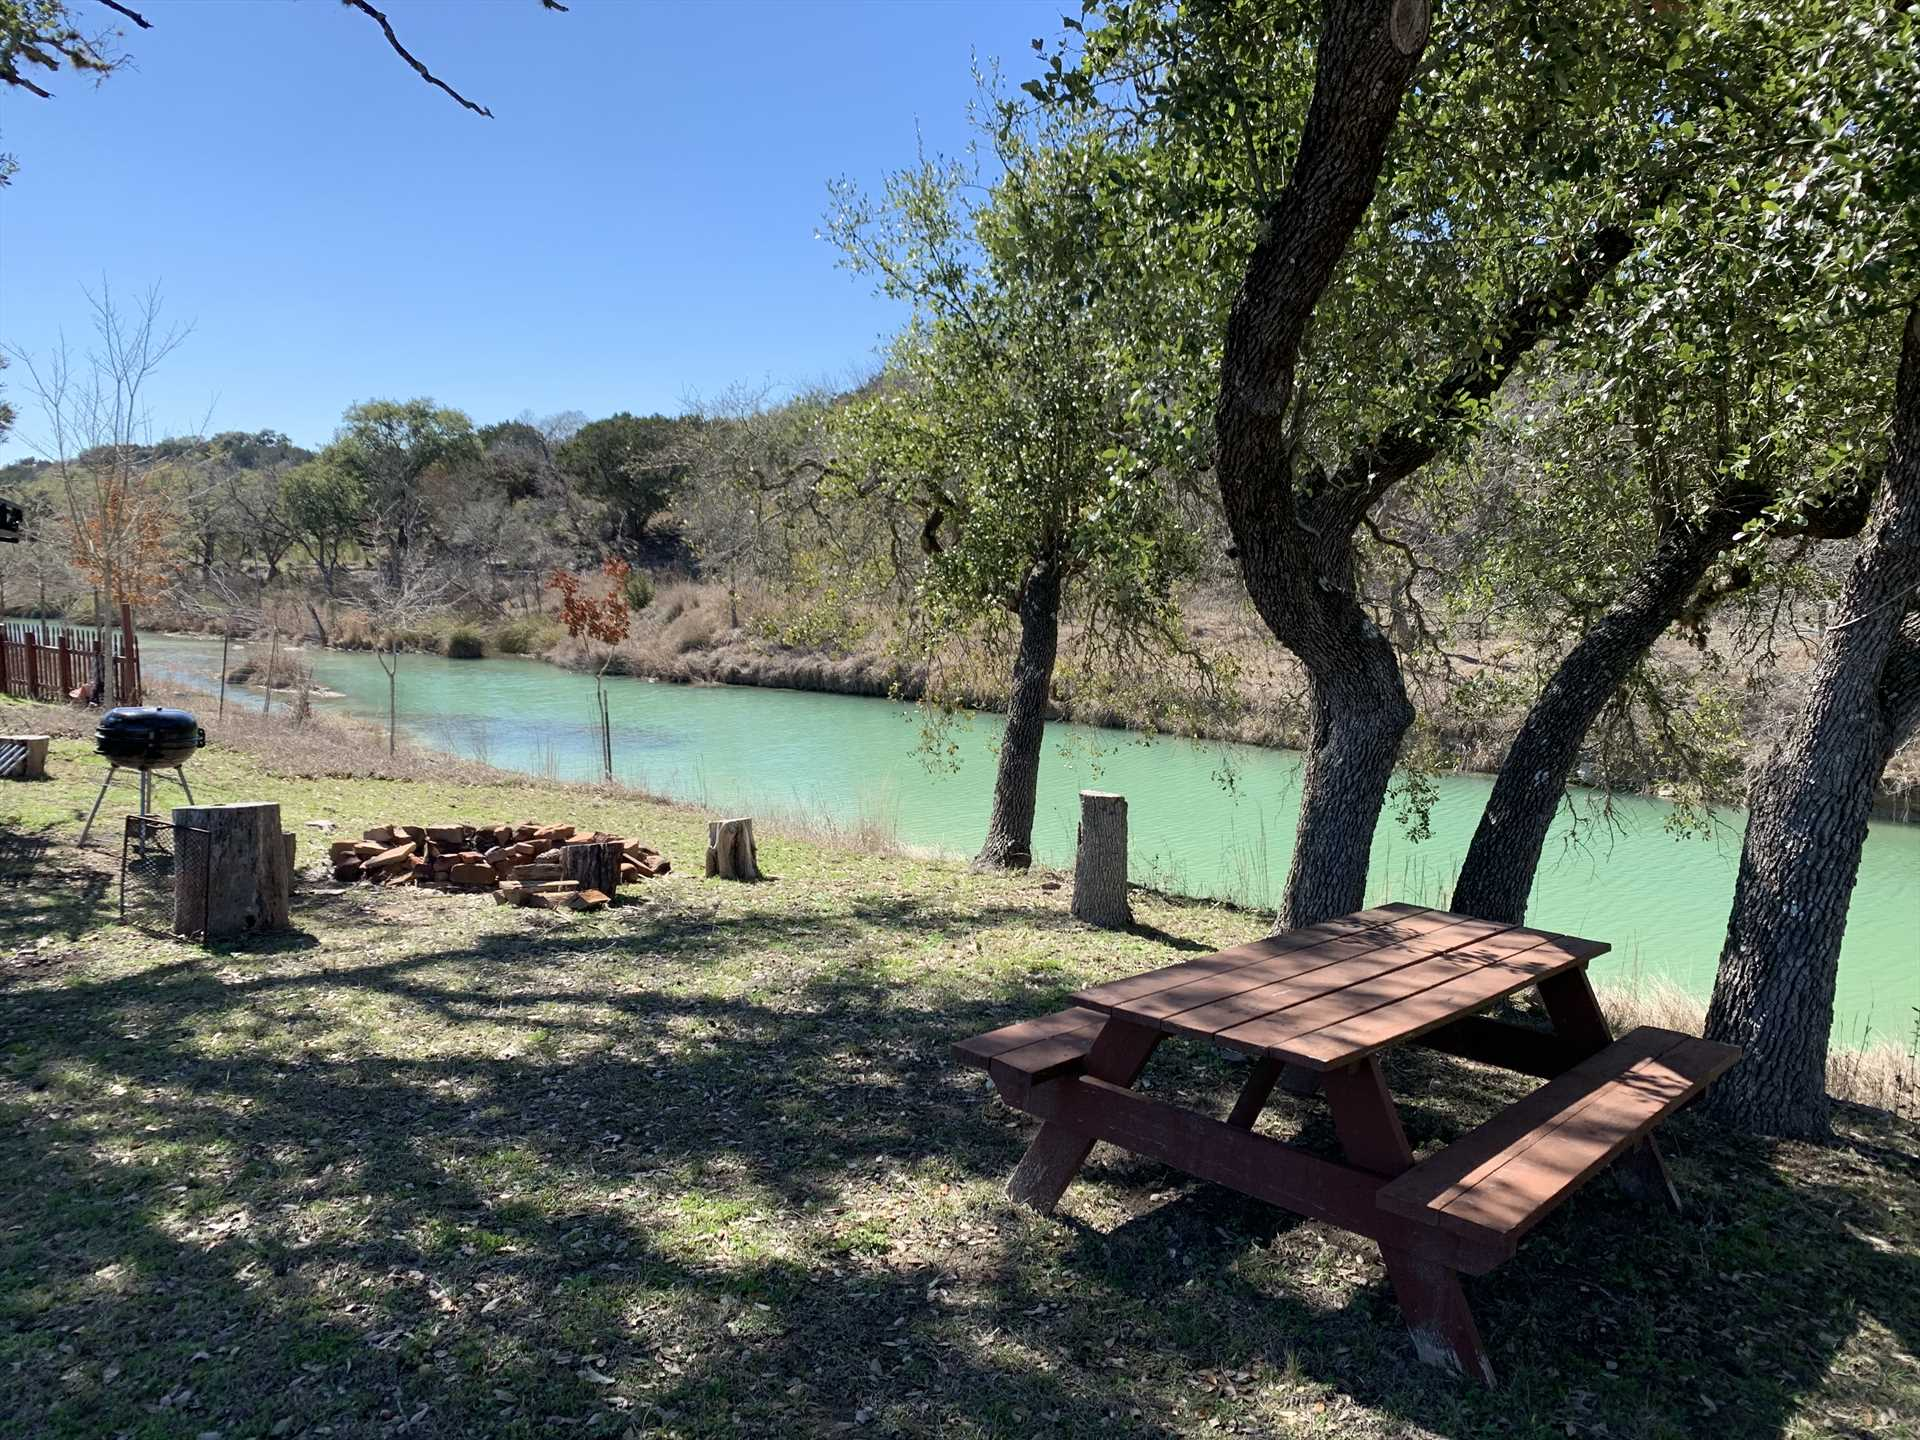 Nothing satisfies like a grilled meal by the creekside in the fresh Hill Country air!